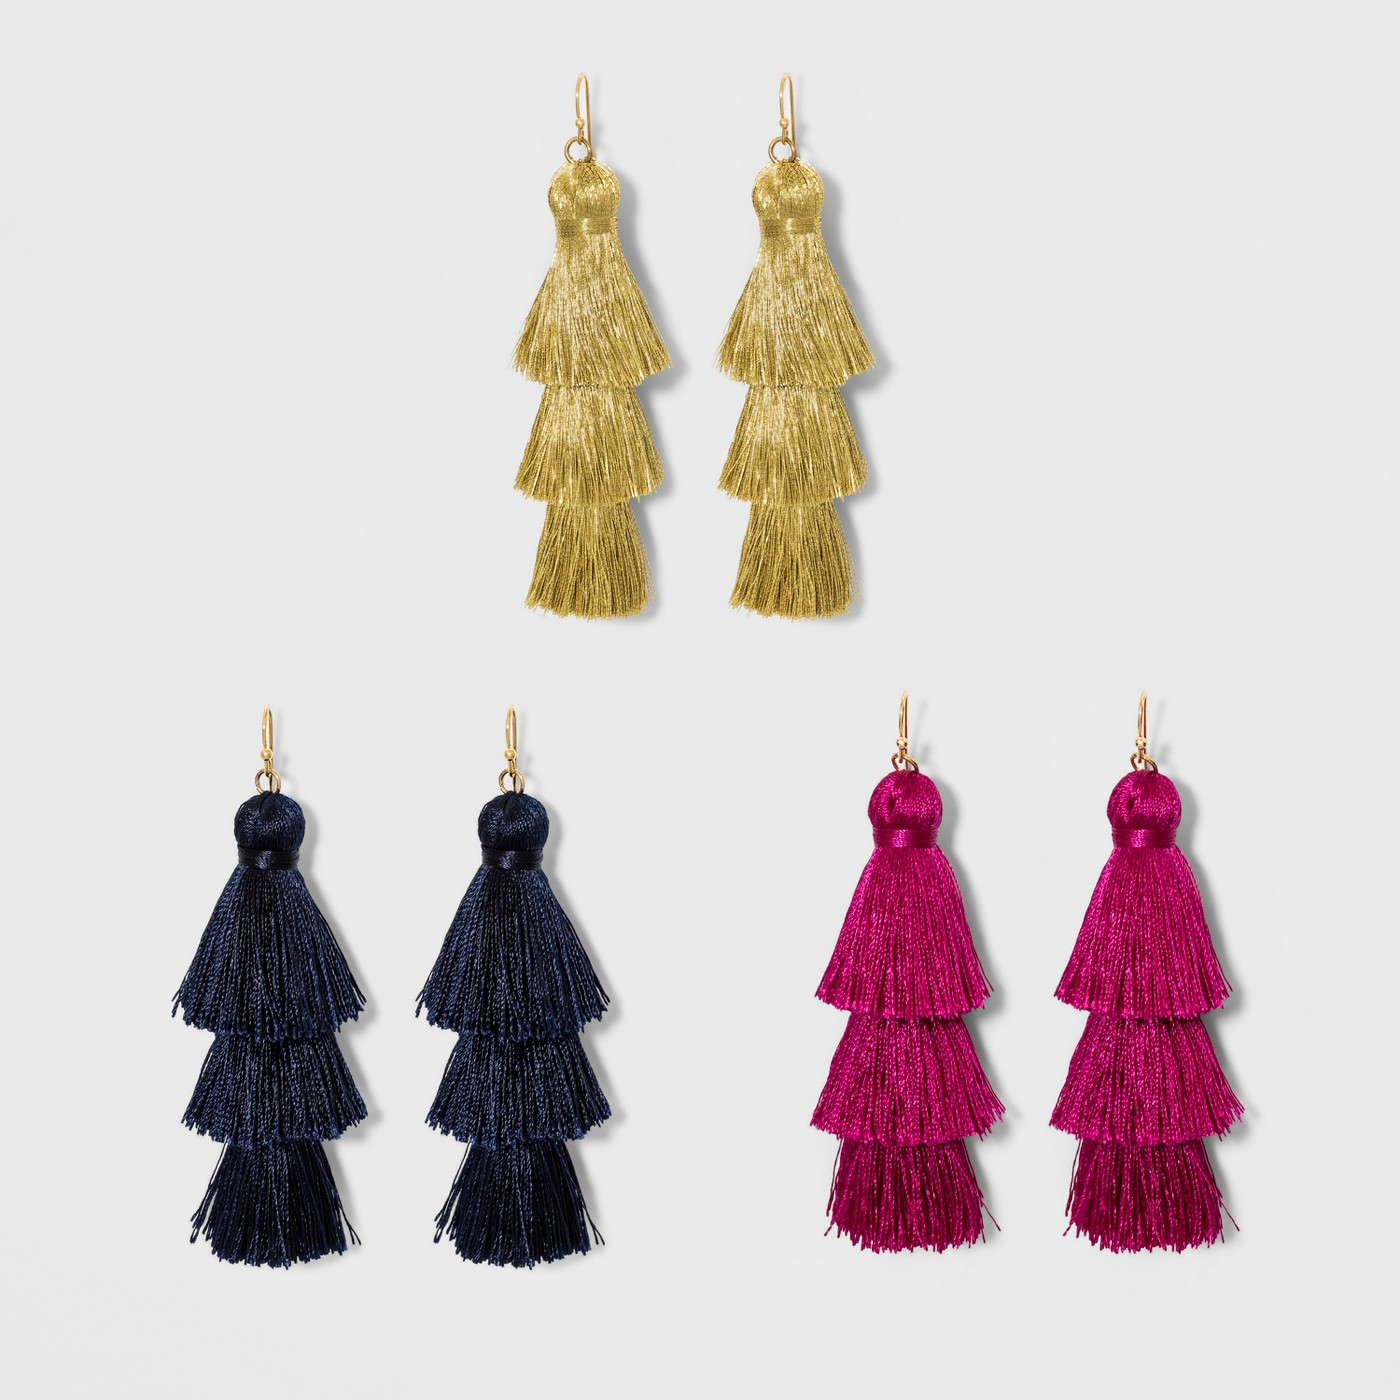 Pink, Gold, and Black Tassel Earrings gift set